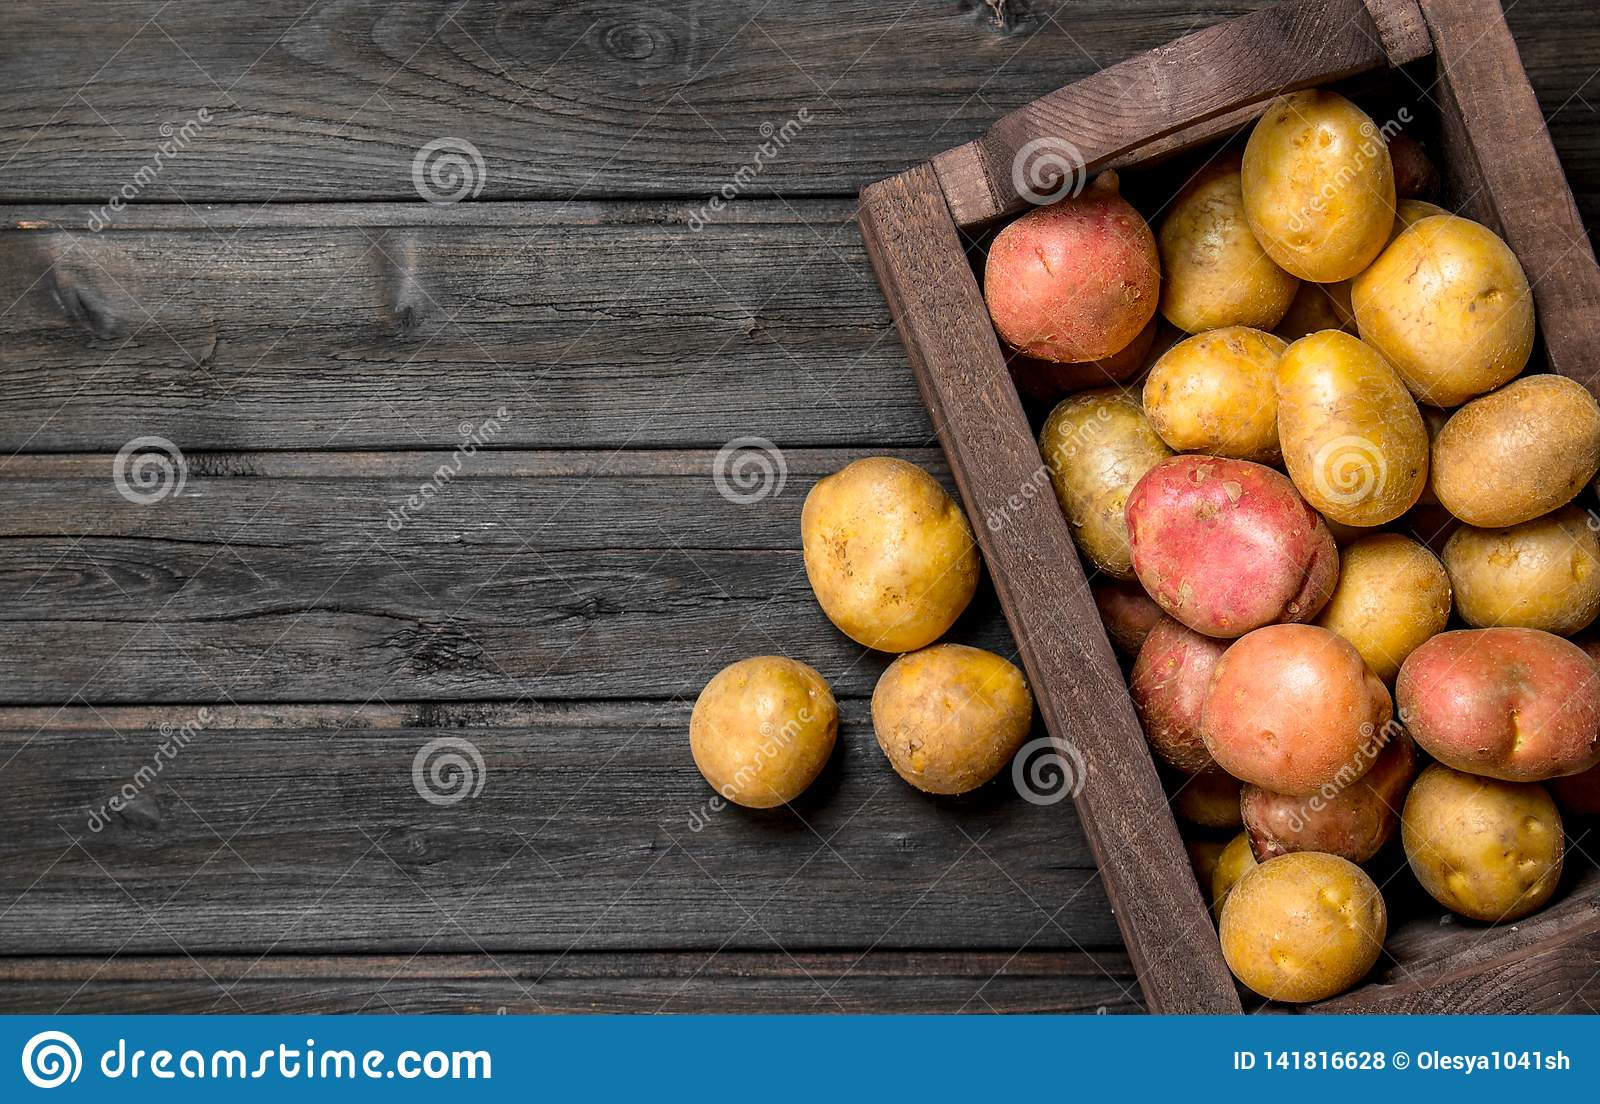 Fresh potatoes in a wooden box